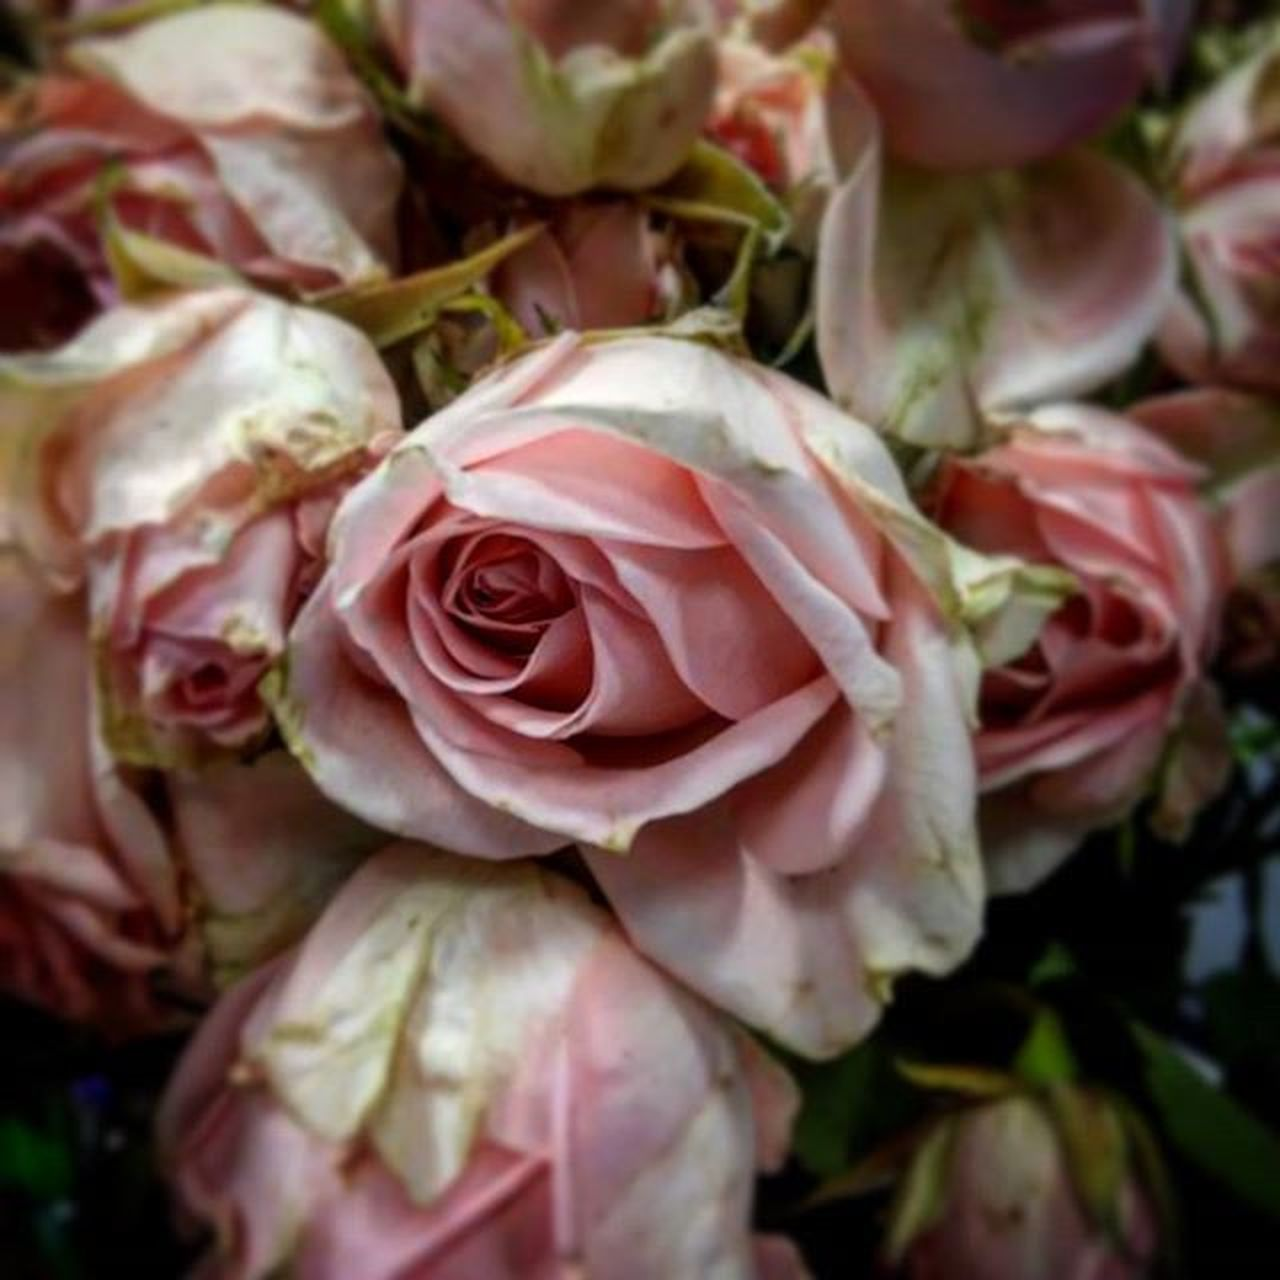 flower, nature, petal, rose - flower, close-up, flower head, plant, growth, no people, fragility, pink color, outdoors, beauty in nature, freshness, day